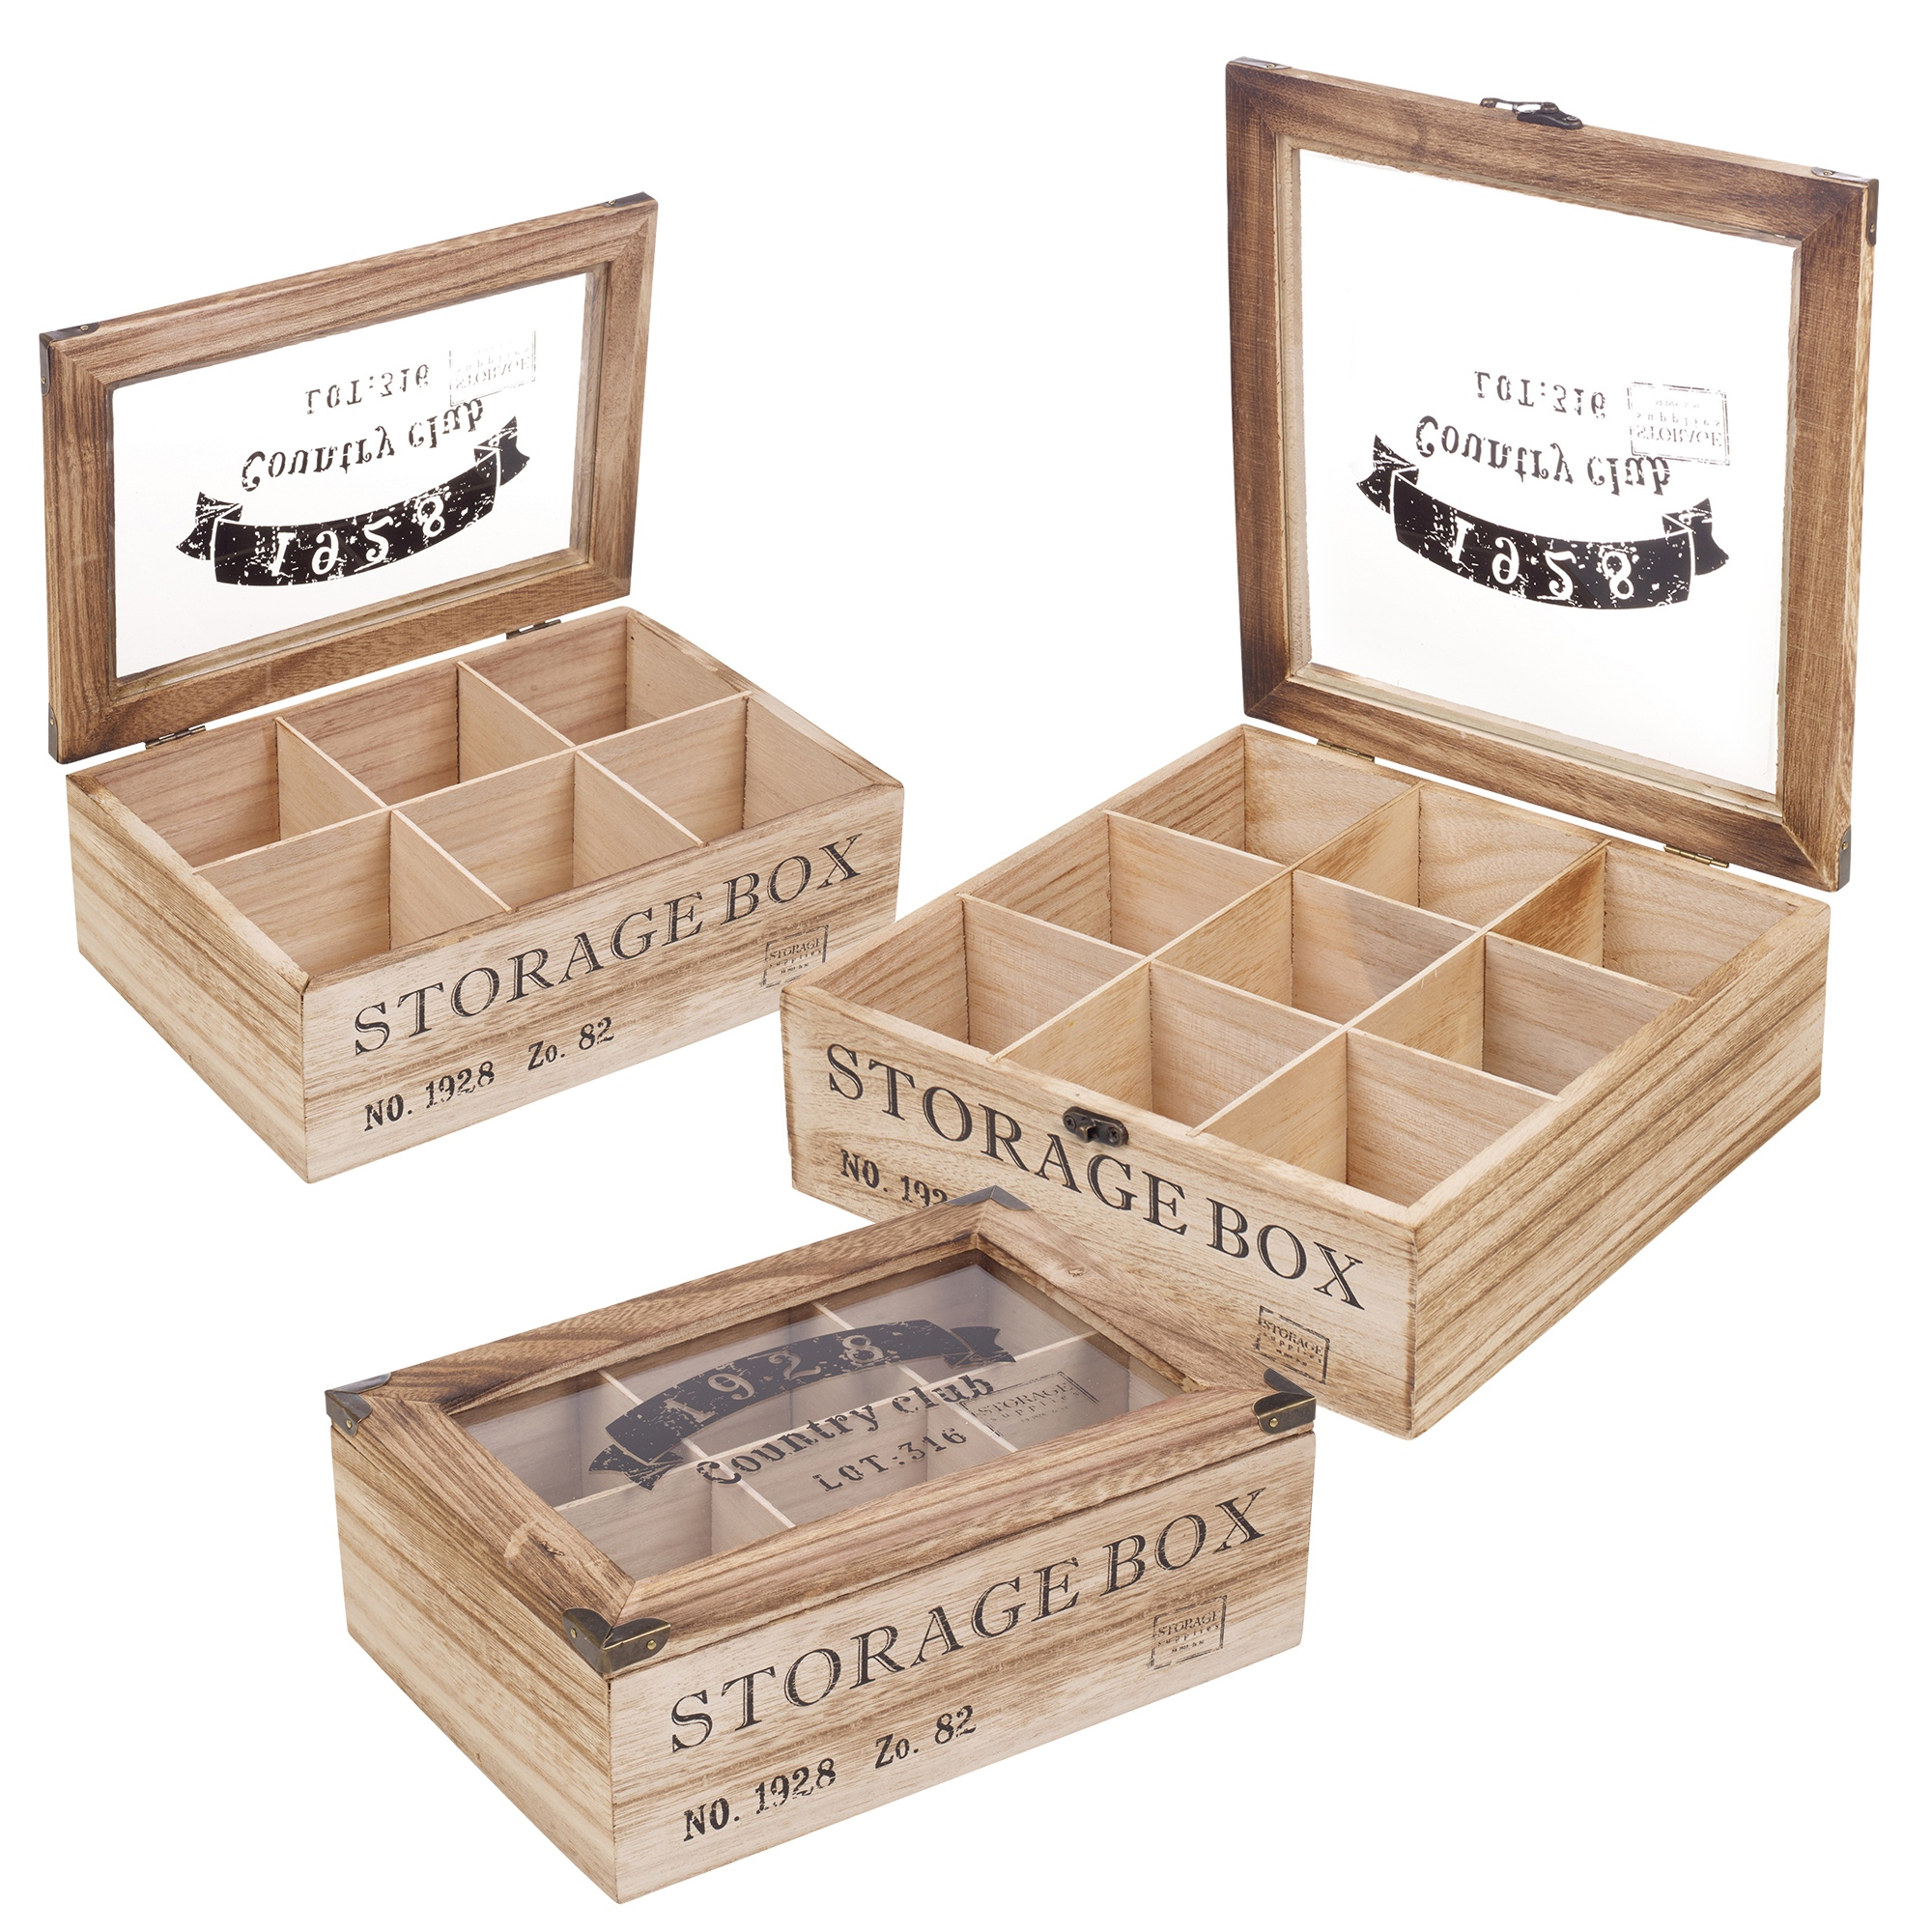 wooden tea box 6 or 9 section compartments glass lid multi storage spice chest ebay. Black Bedroom Furniture Sets. Home Design Ideas